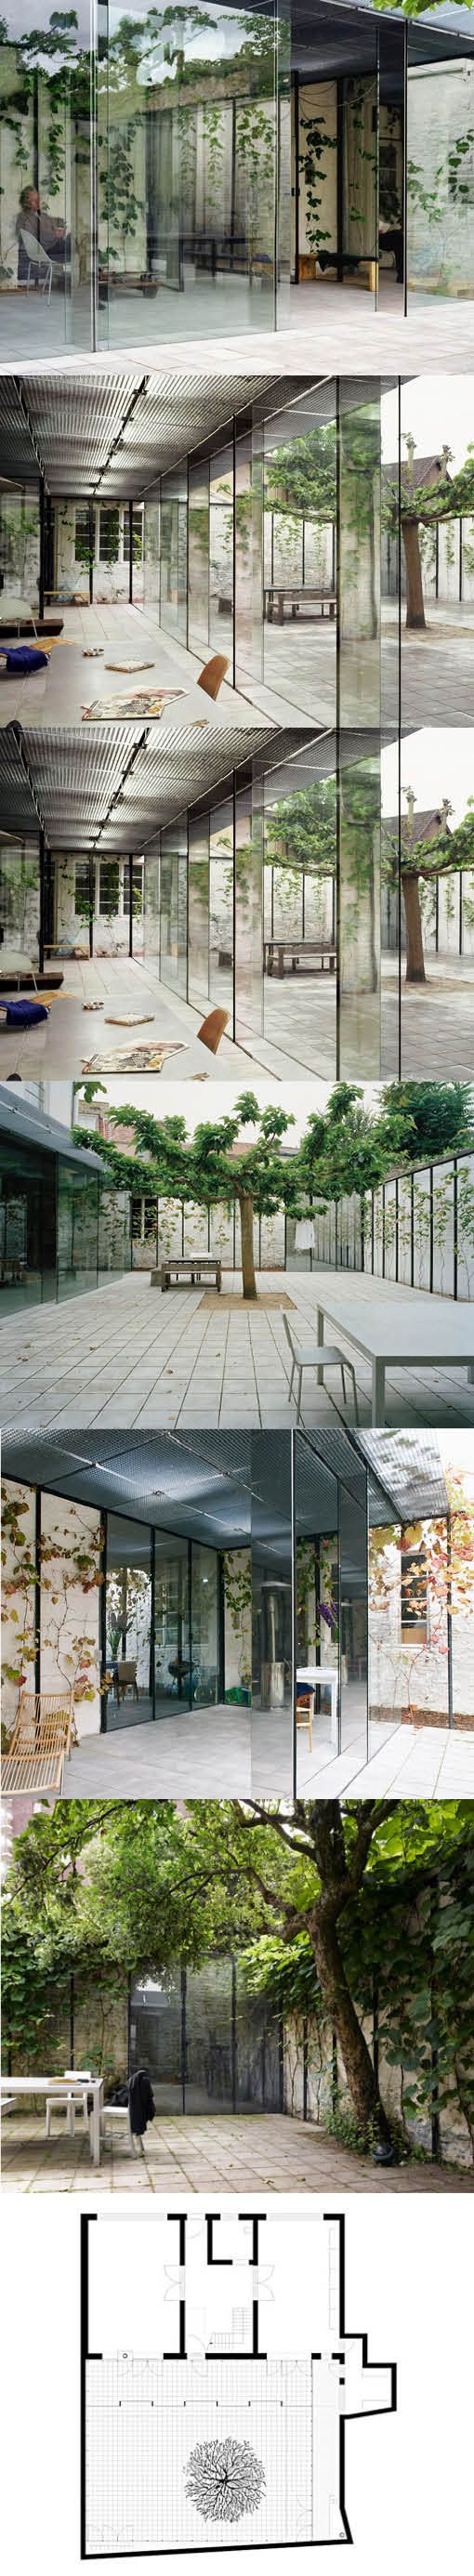 2007 Kersten Geers David van Severen - Summerhouse extension / Ghent Belgium / Office KGDVS / minimalism / glass